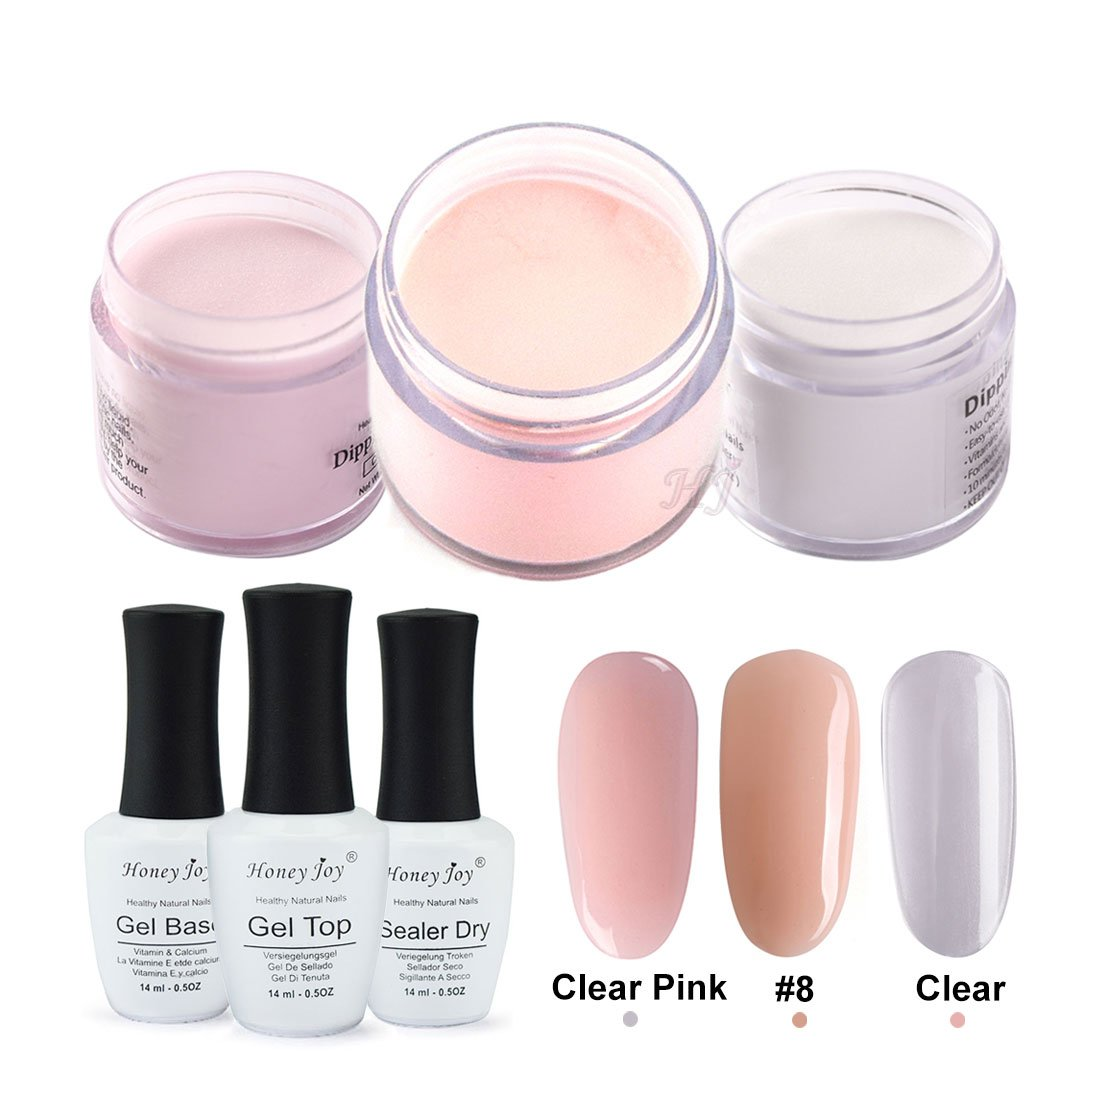 4 in 1 Tool Kits 28g/Box Nude Pink Dipping Powder Without Lamp Cure Nails Dip Powder Summer Gel Nail Color Powder Natural Dry